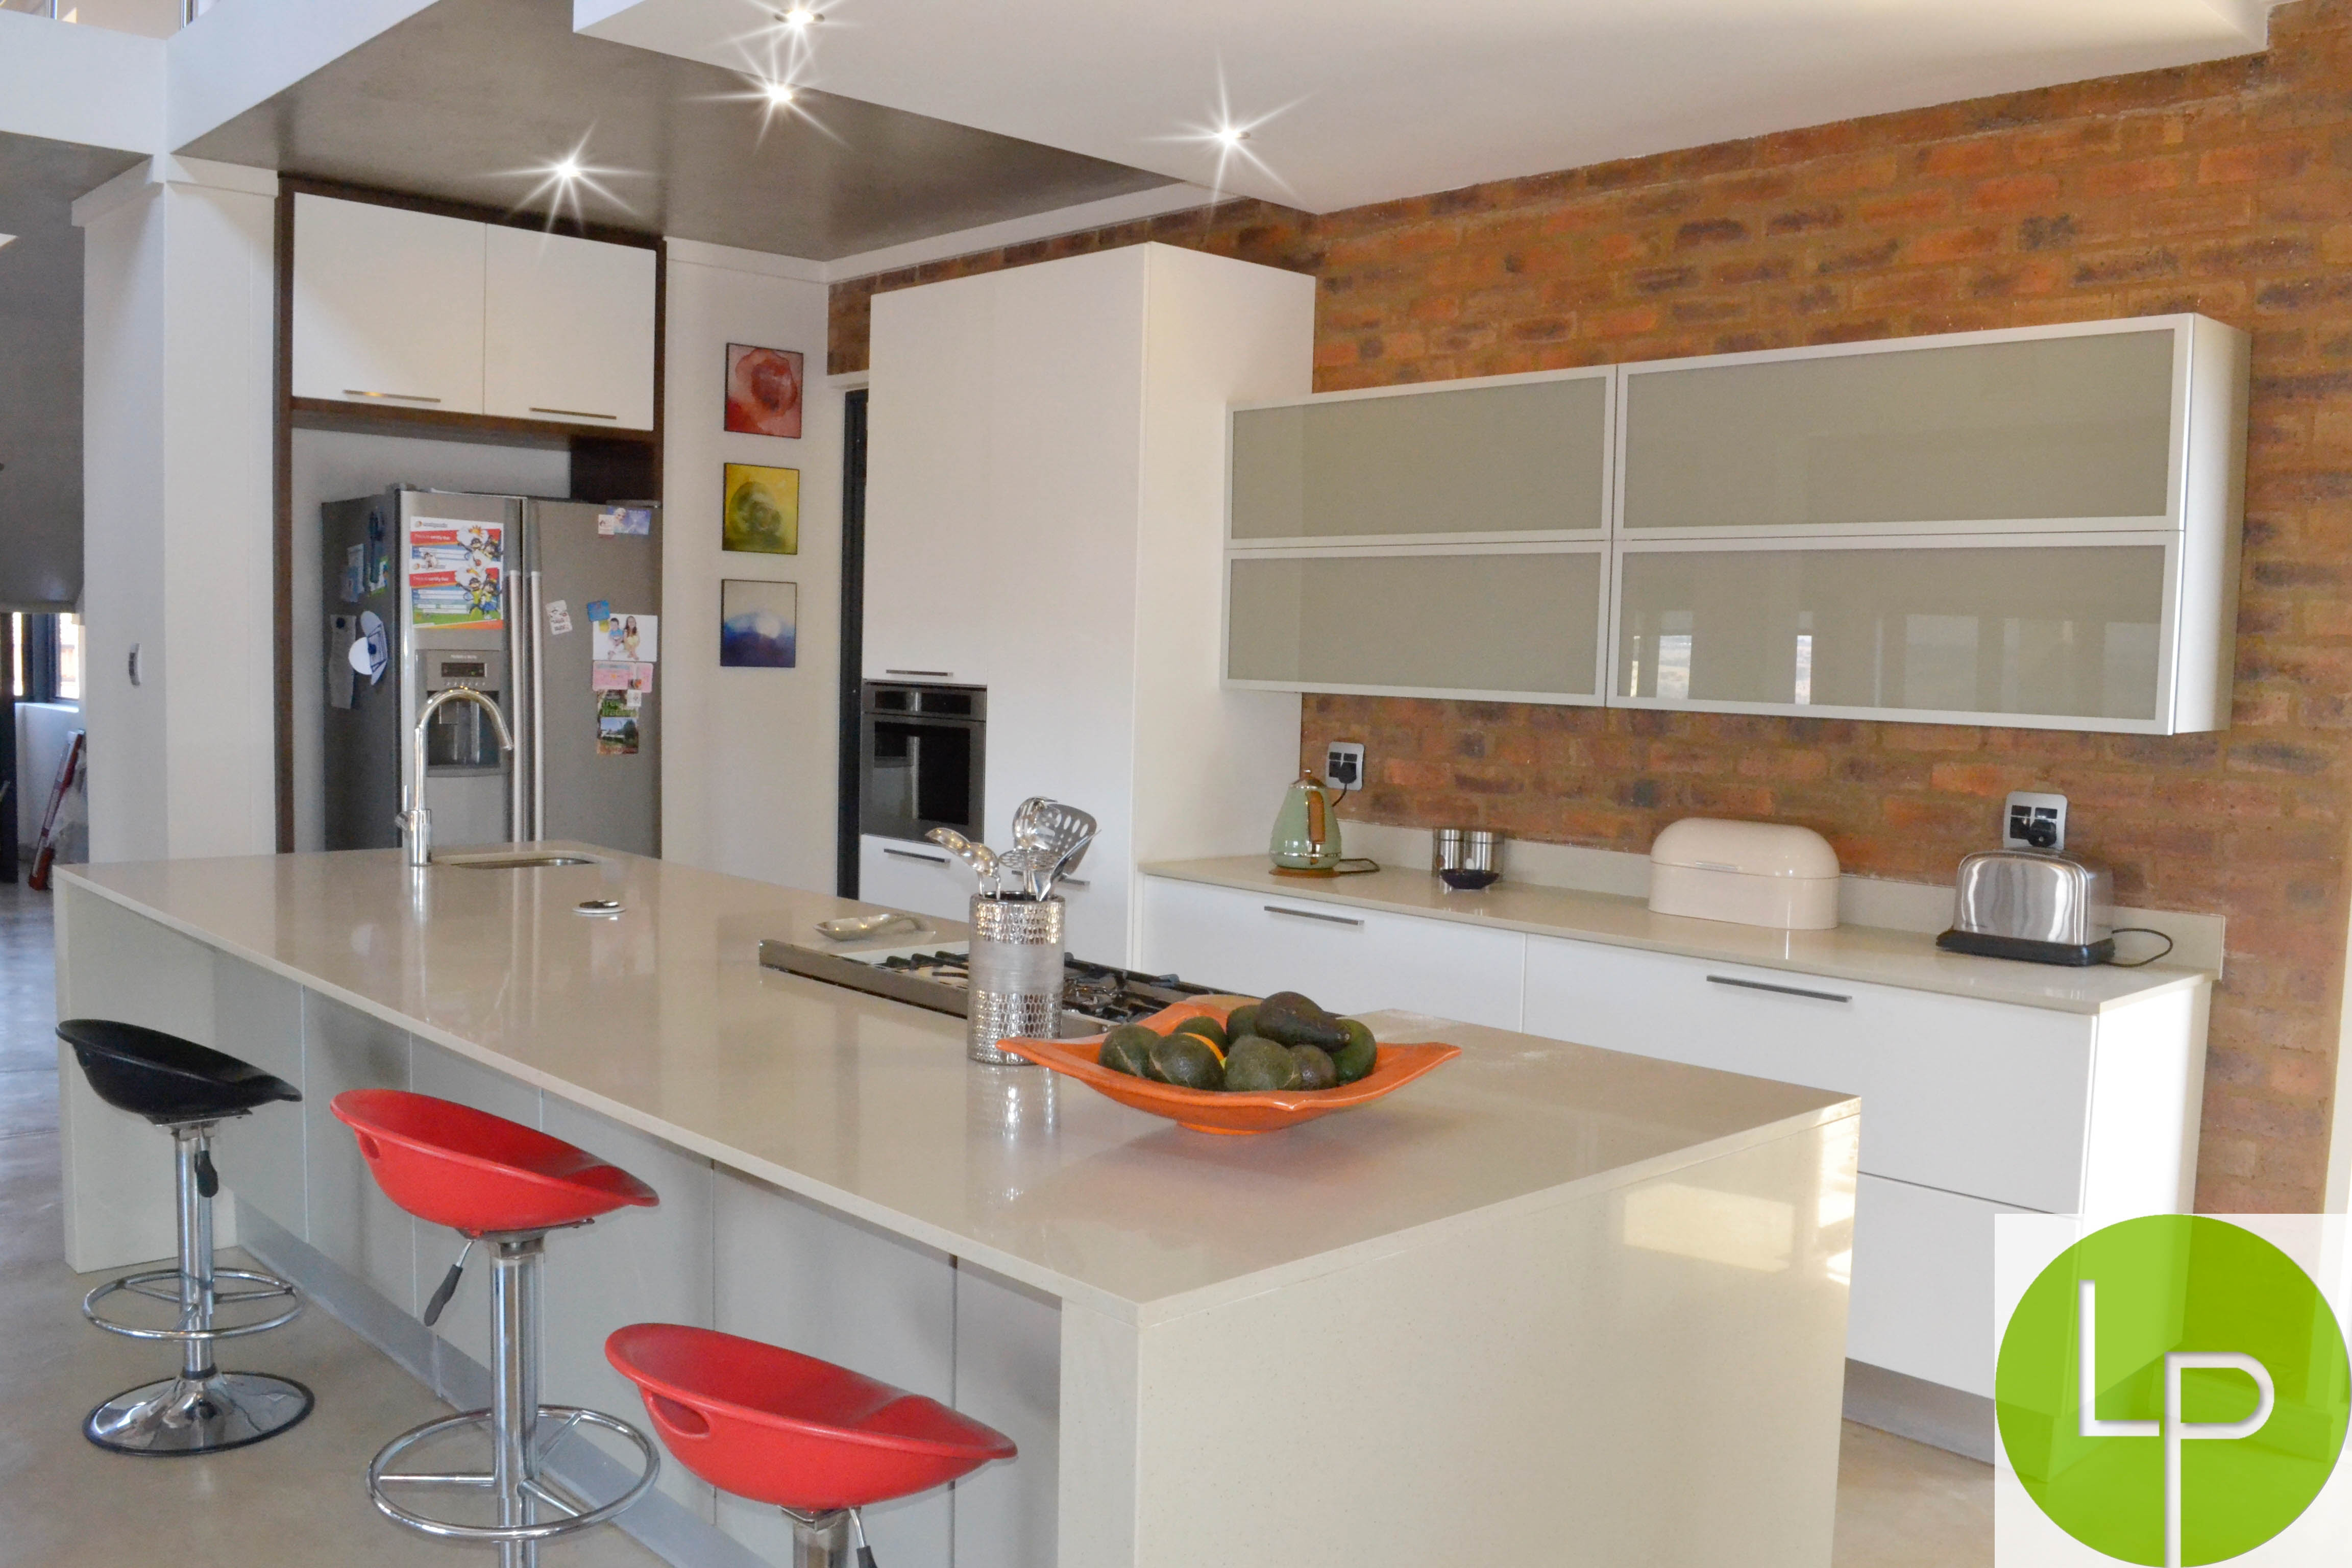 LemonPeppa-Kitchens-2